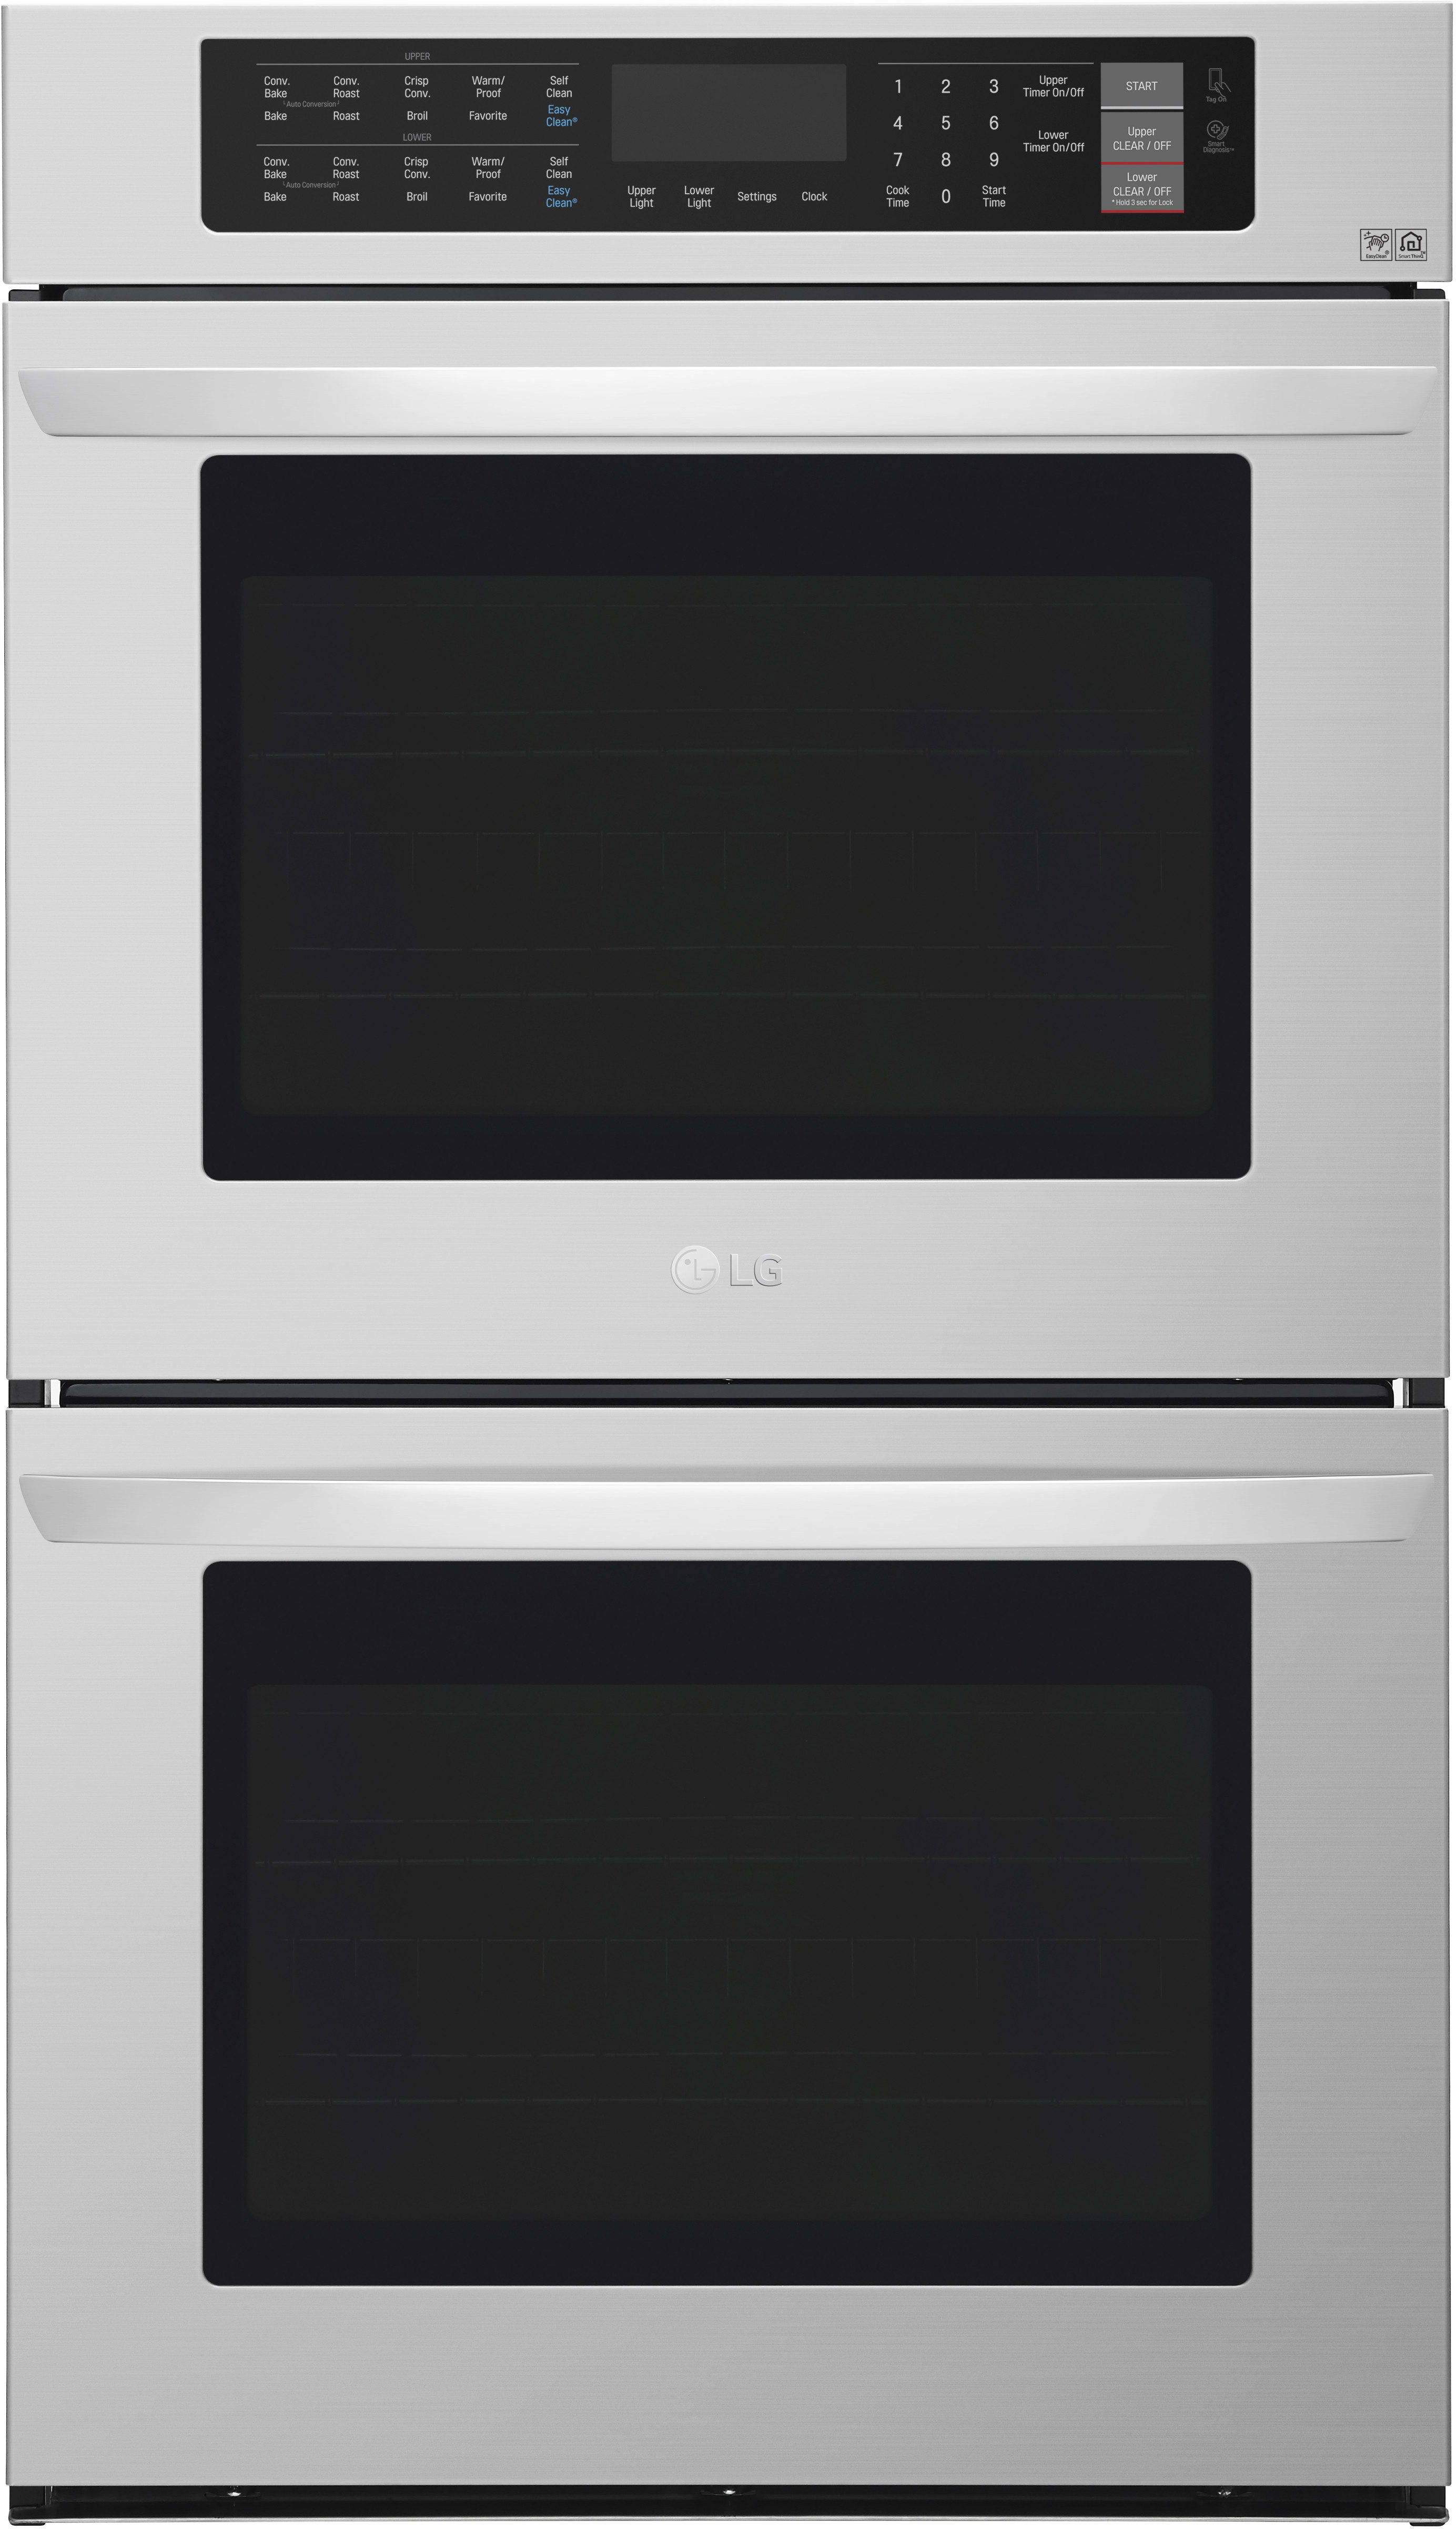 Lg Lwd3063st 30 Inch Double Electric Wall Oven With